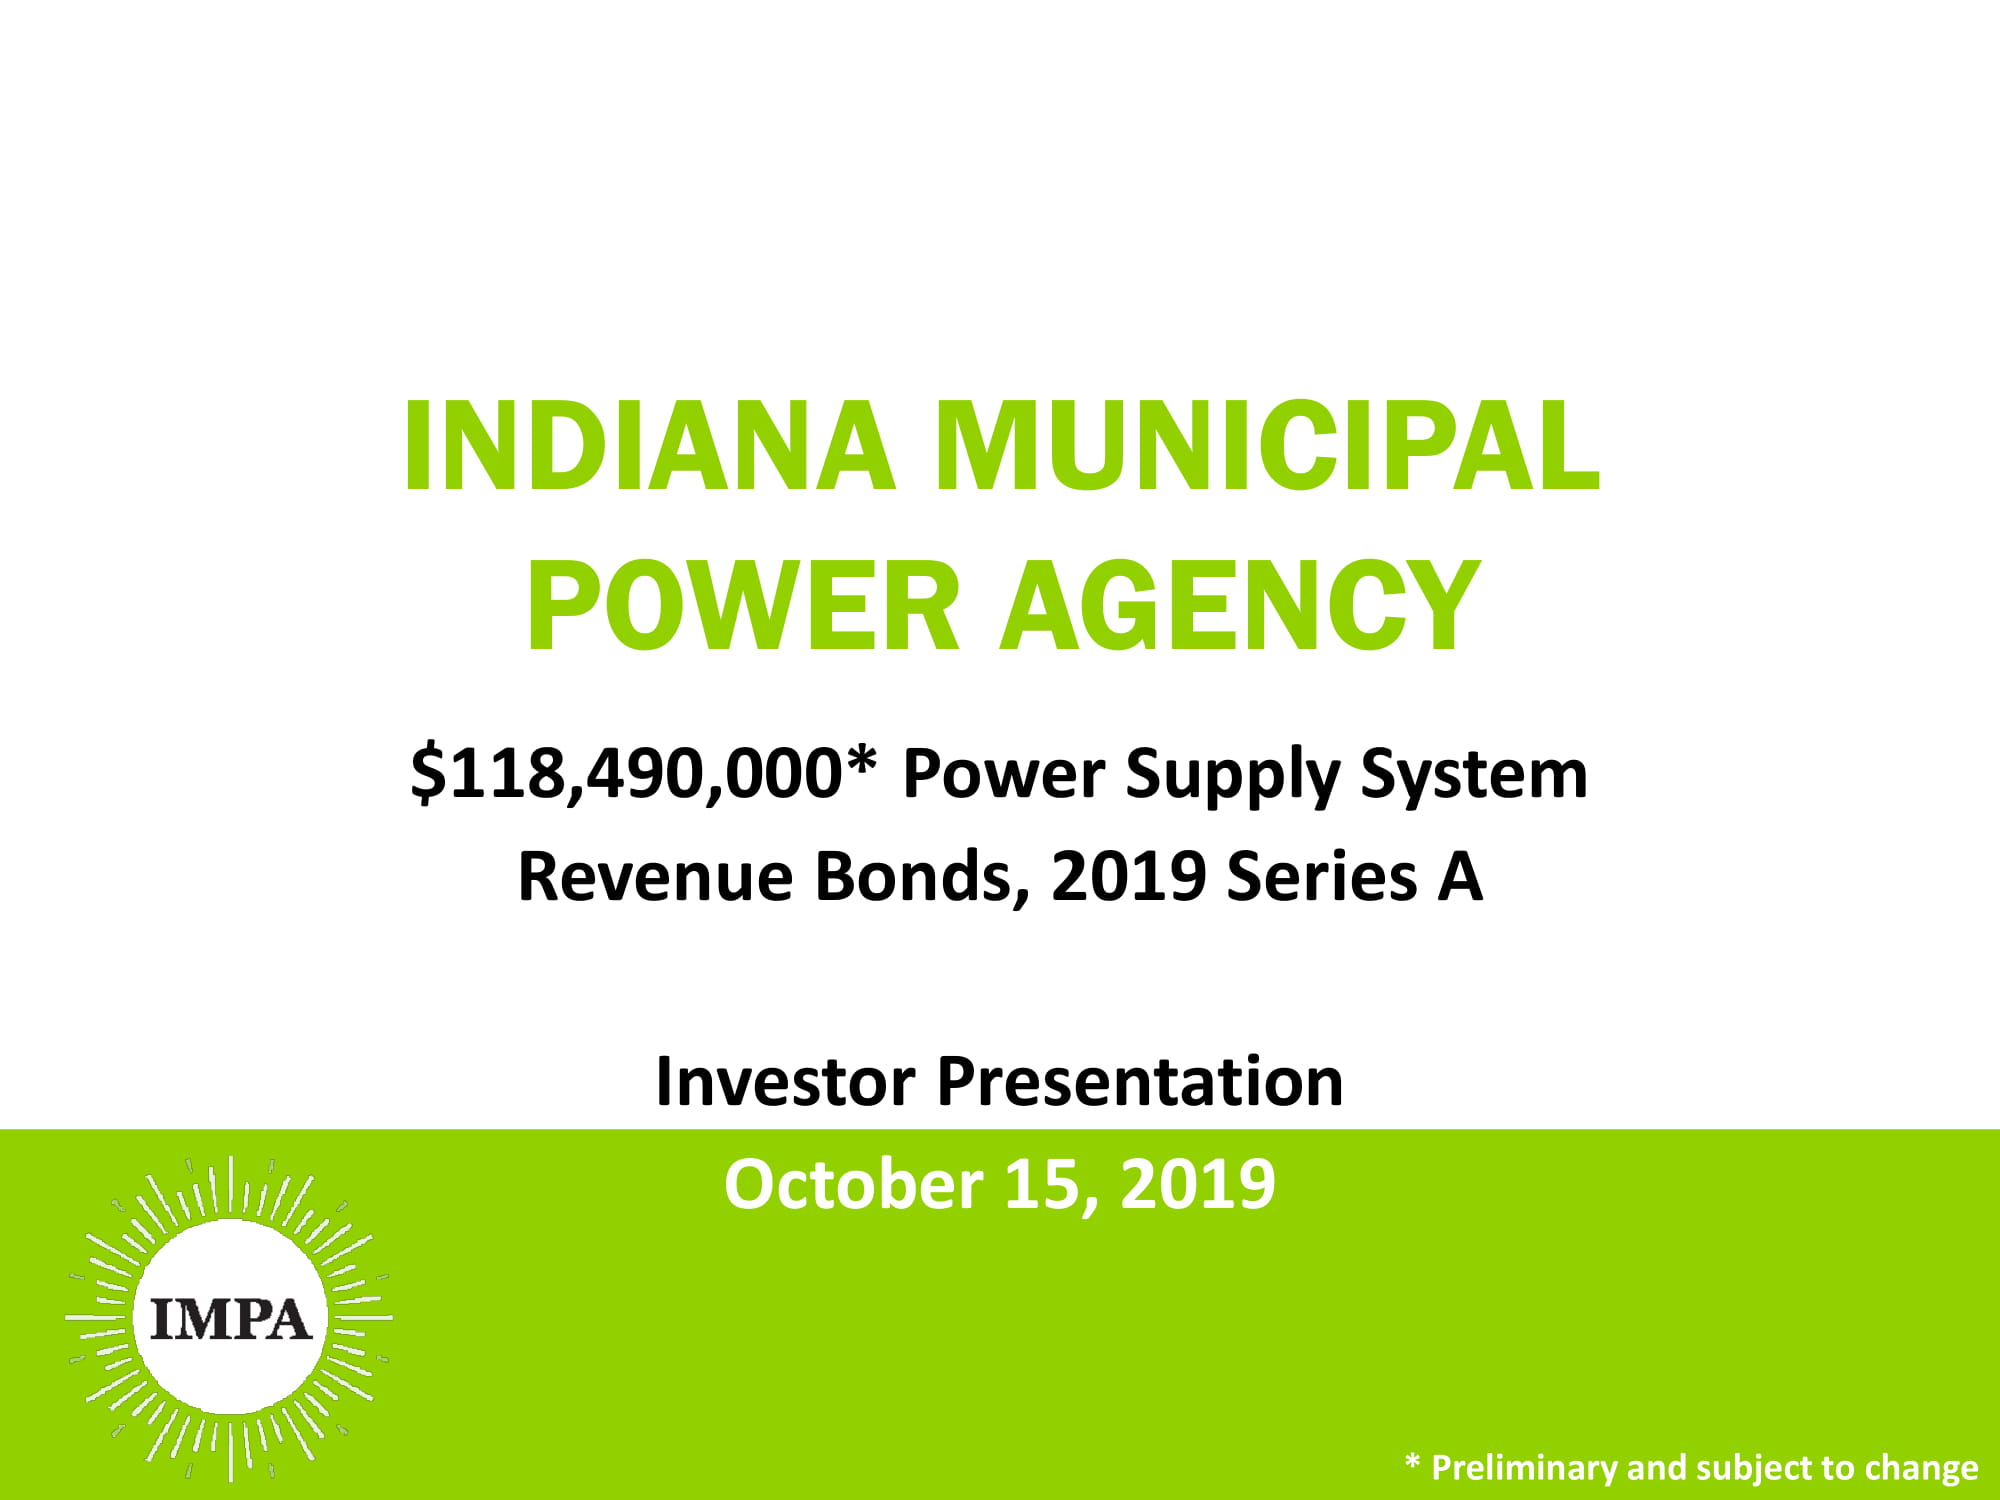 Indiana Municipal Power Agency 2019 Series A